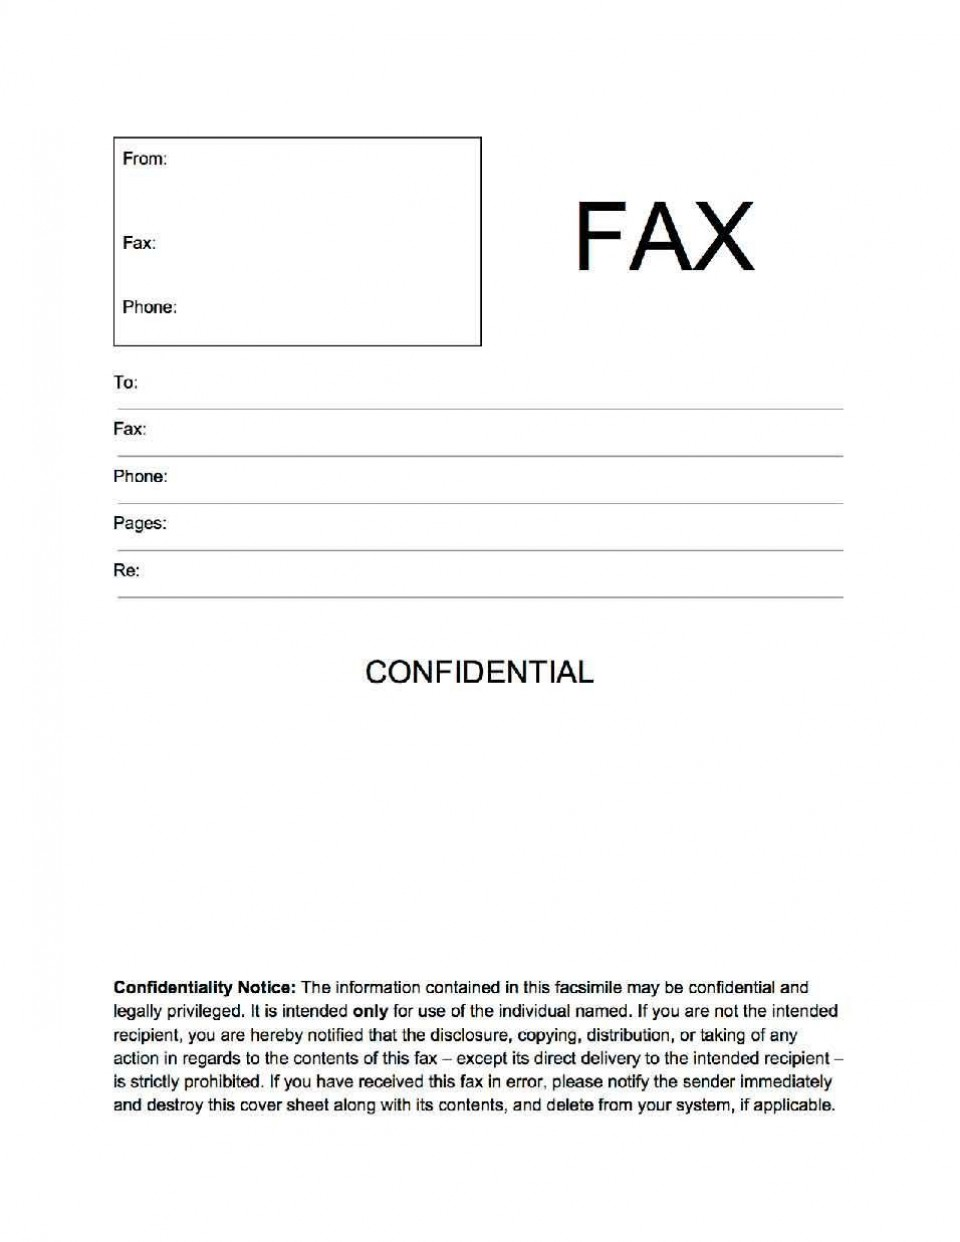 002 Unbelievable General Fax Cover Letter Template Concept  Sheet Word Confidential Example960